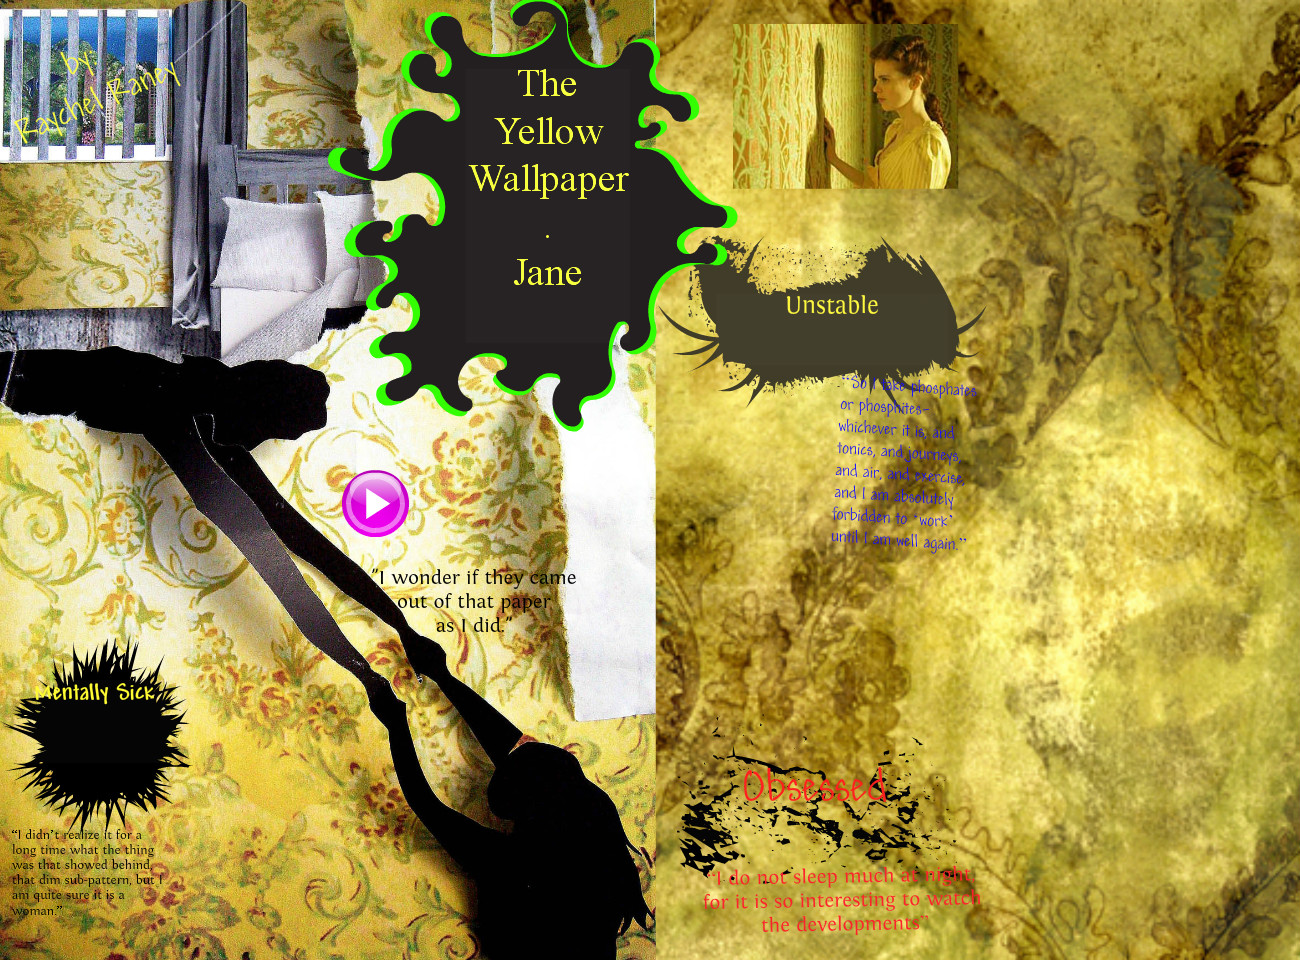 The Yellow Wallpaper Sparknotes Summary